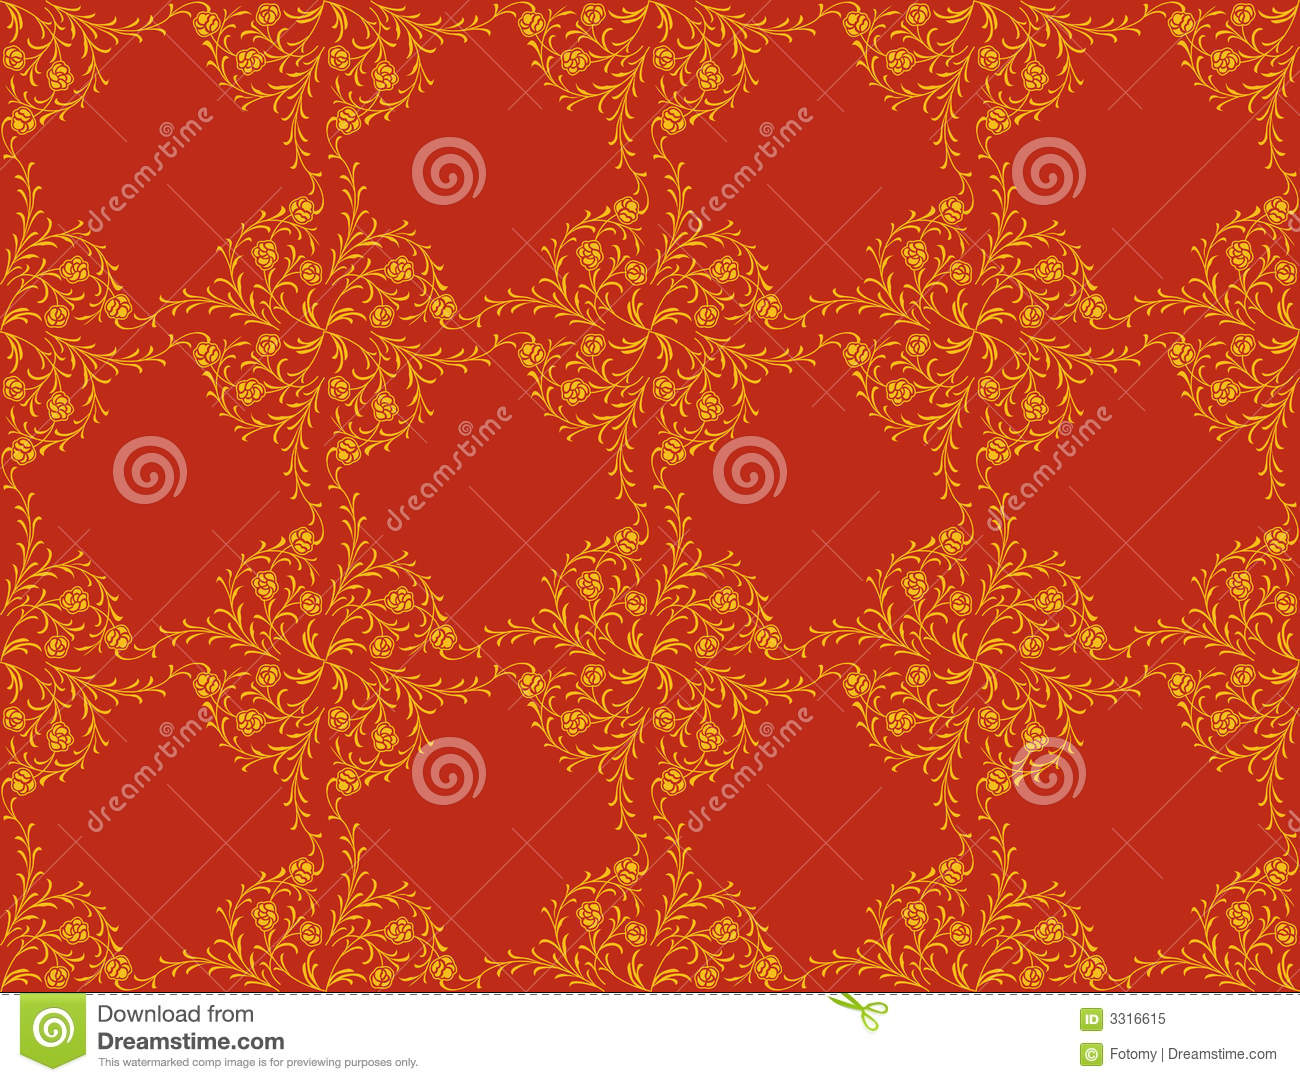 Victorian wallpaper pattern red - photo#19